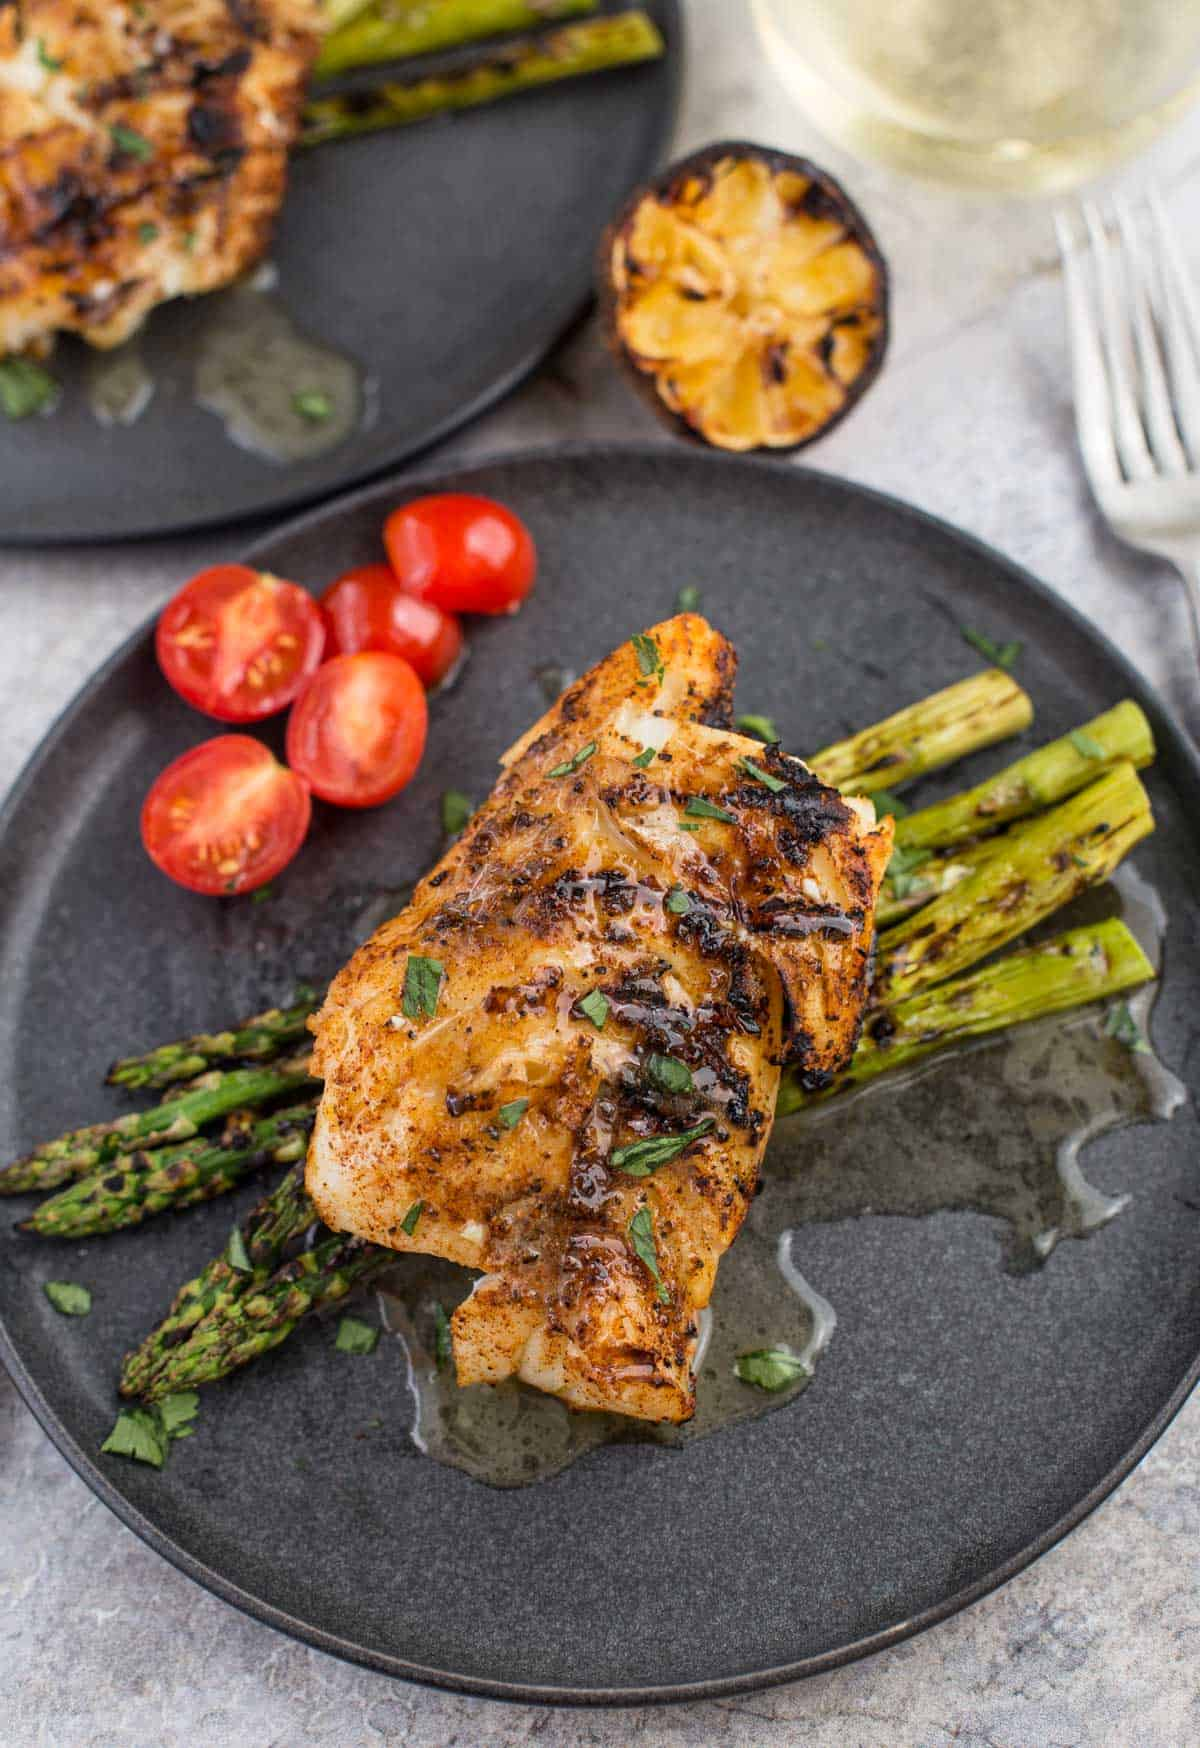 Grilled Cod with White Wine Butter Sauce on a plate with grilled asparagus and cherry tomatoes